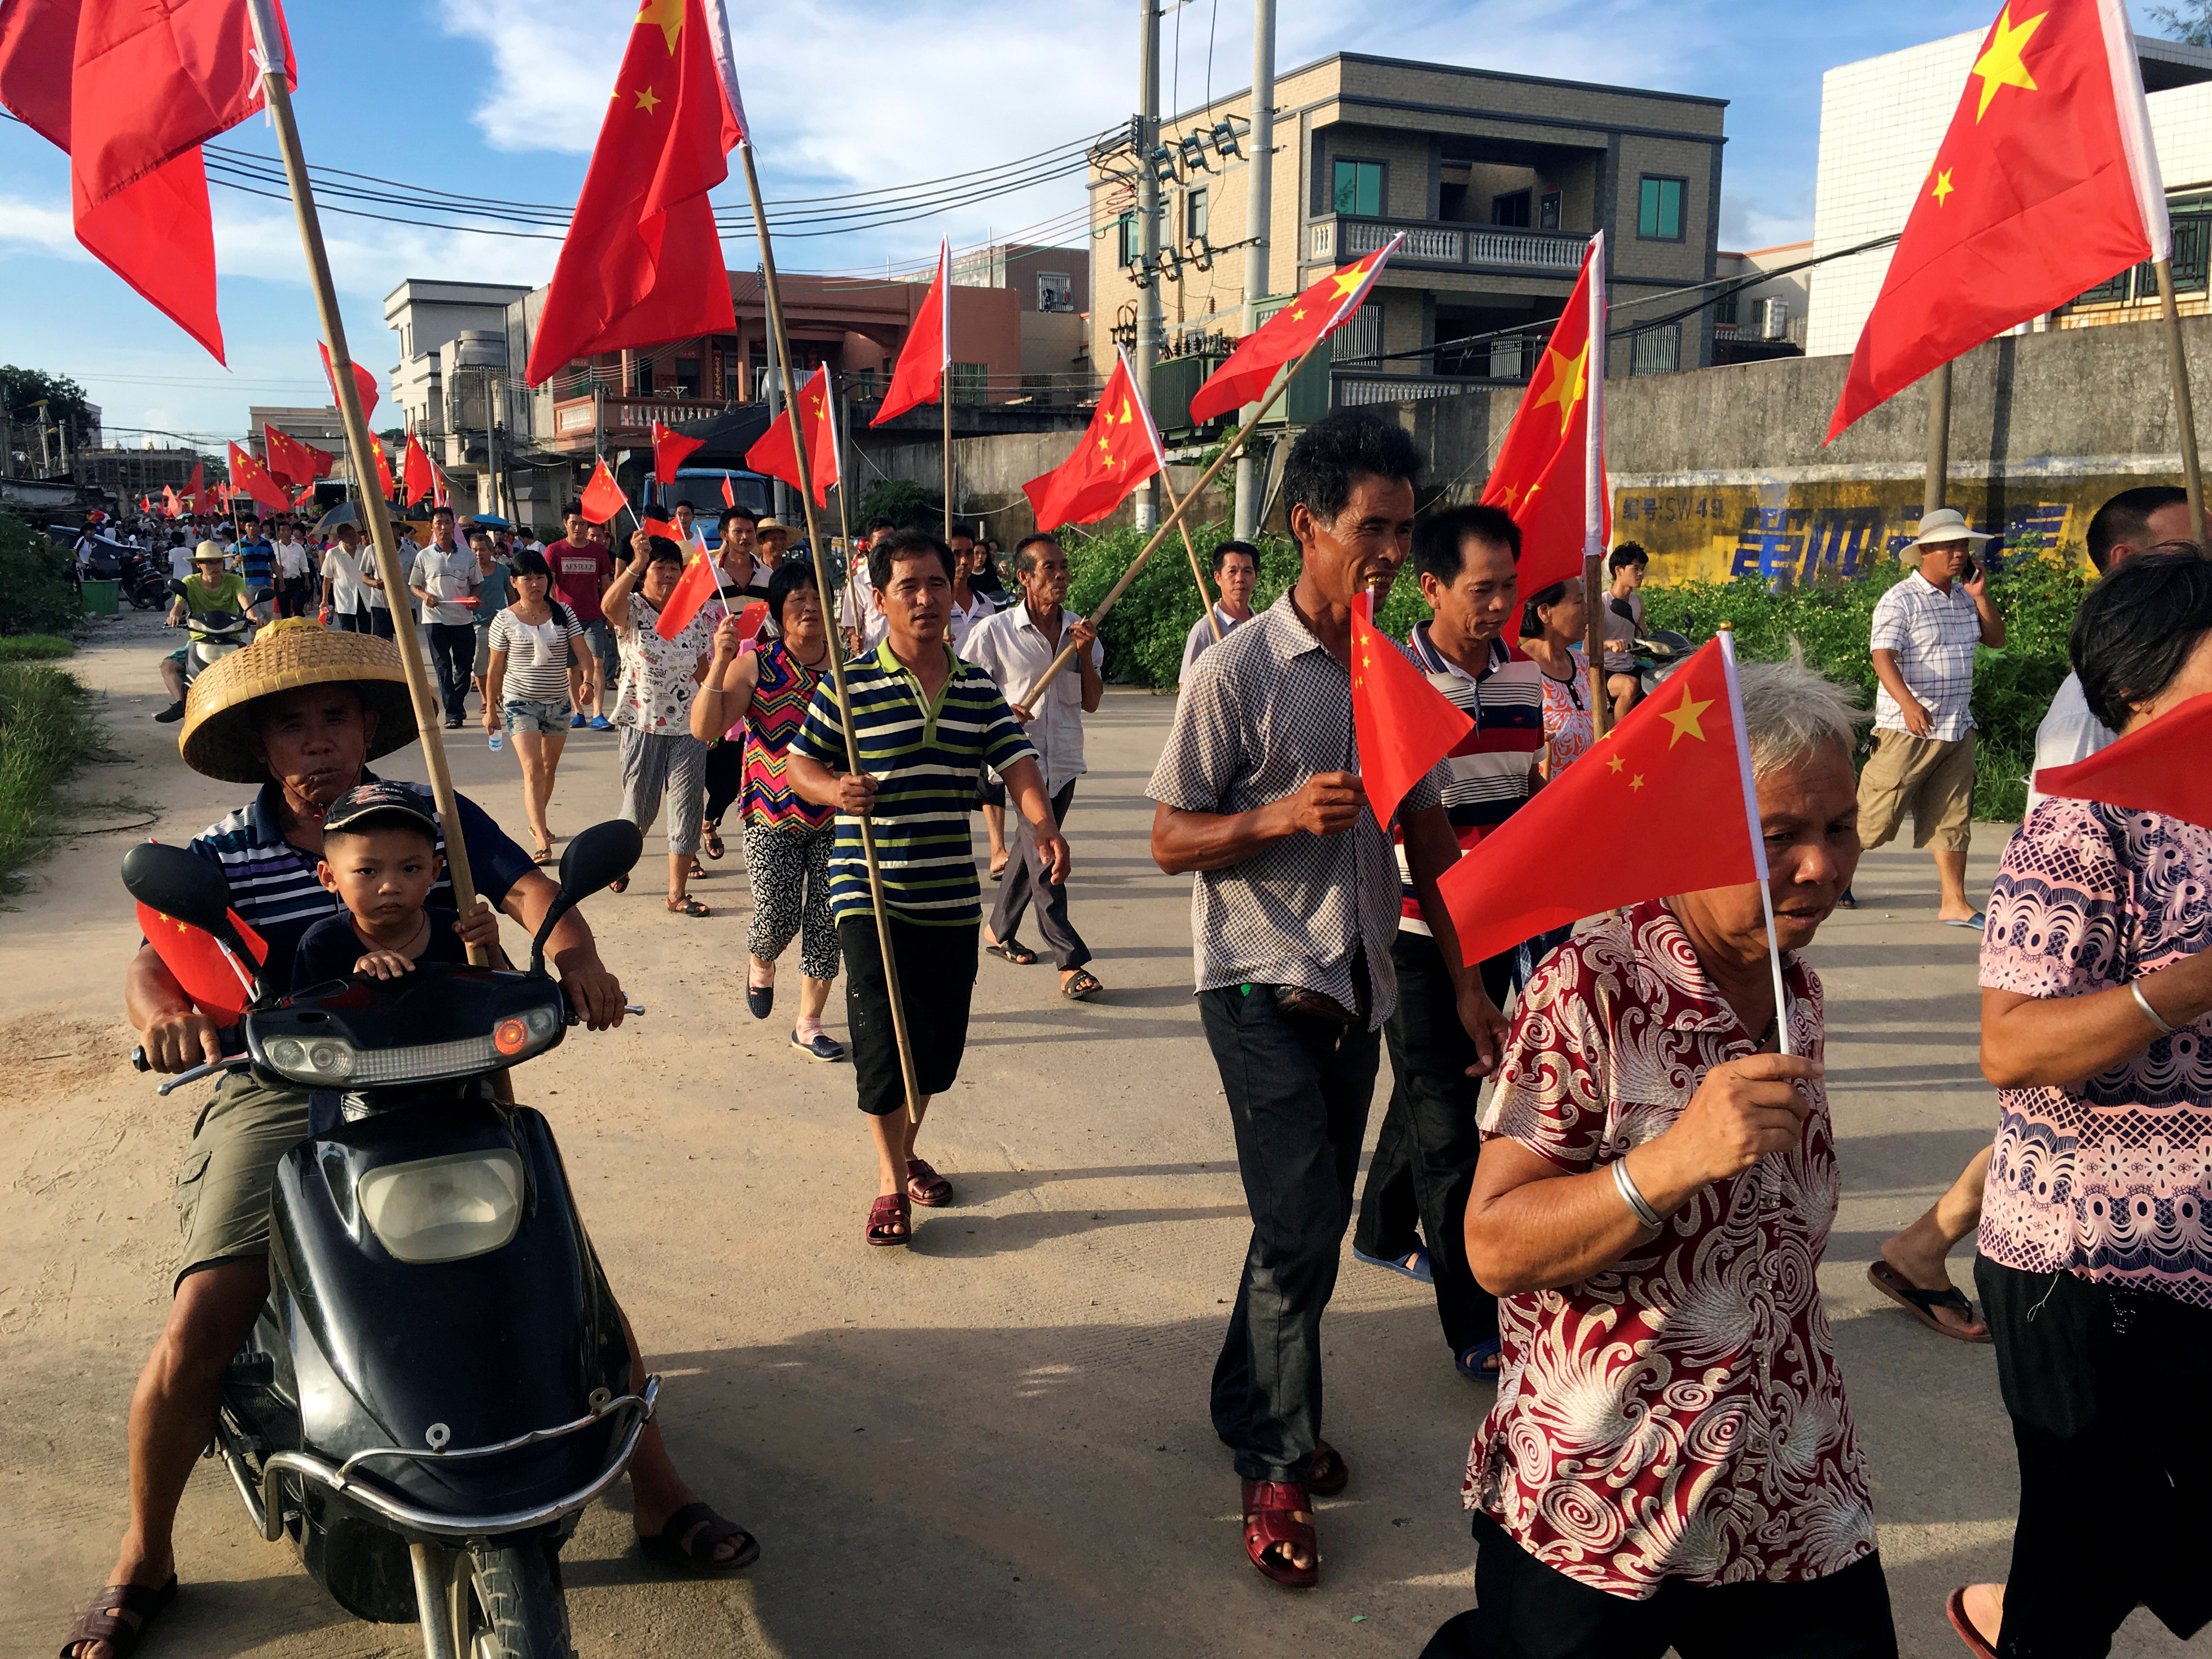 Villagers carrying Chinese national flags protest at Wukan village in China's Guangdong province June 20, 2016.